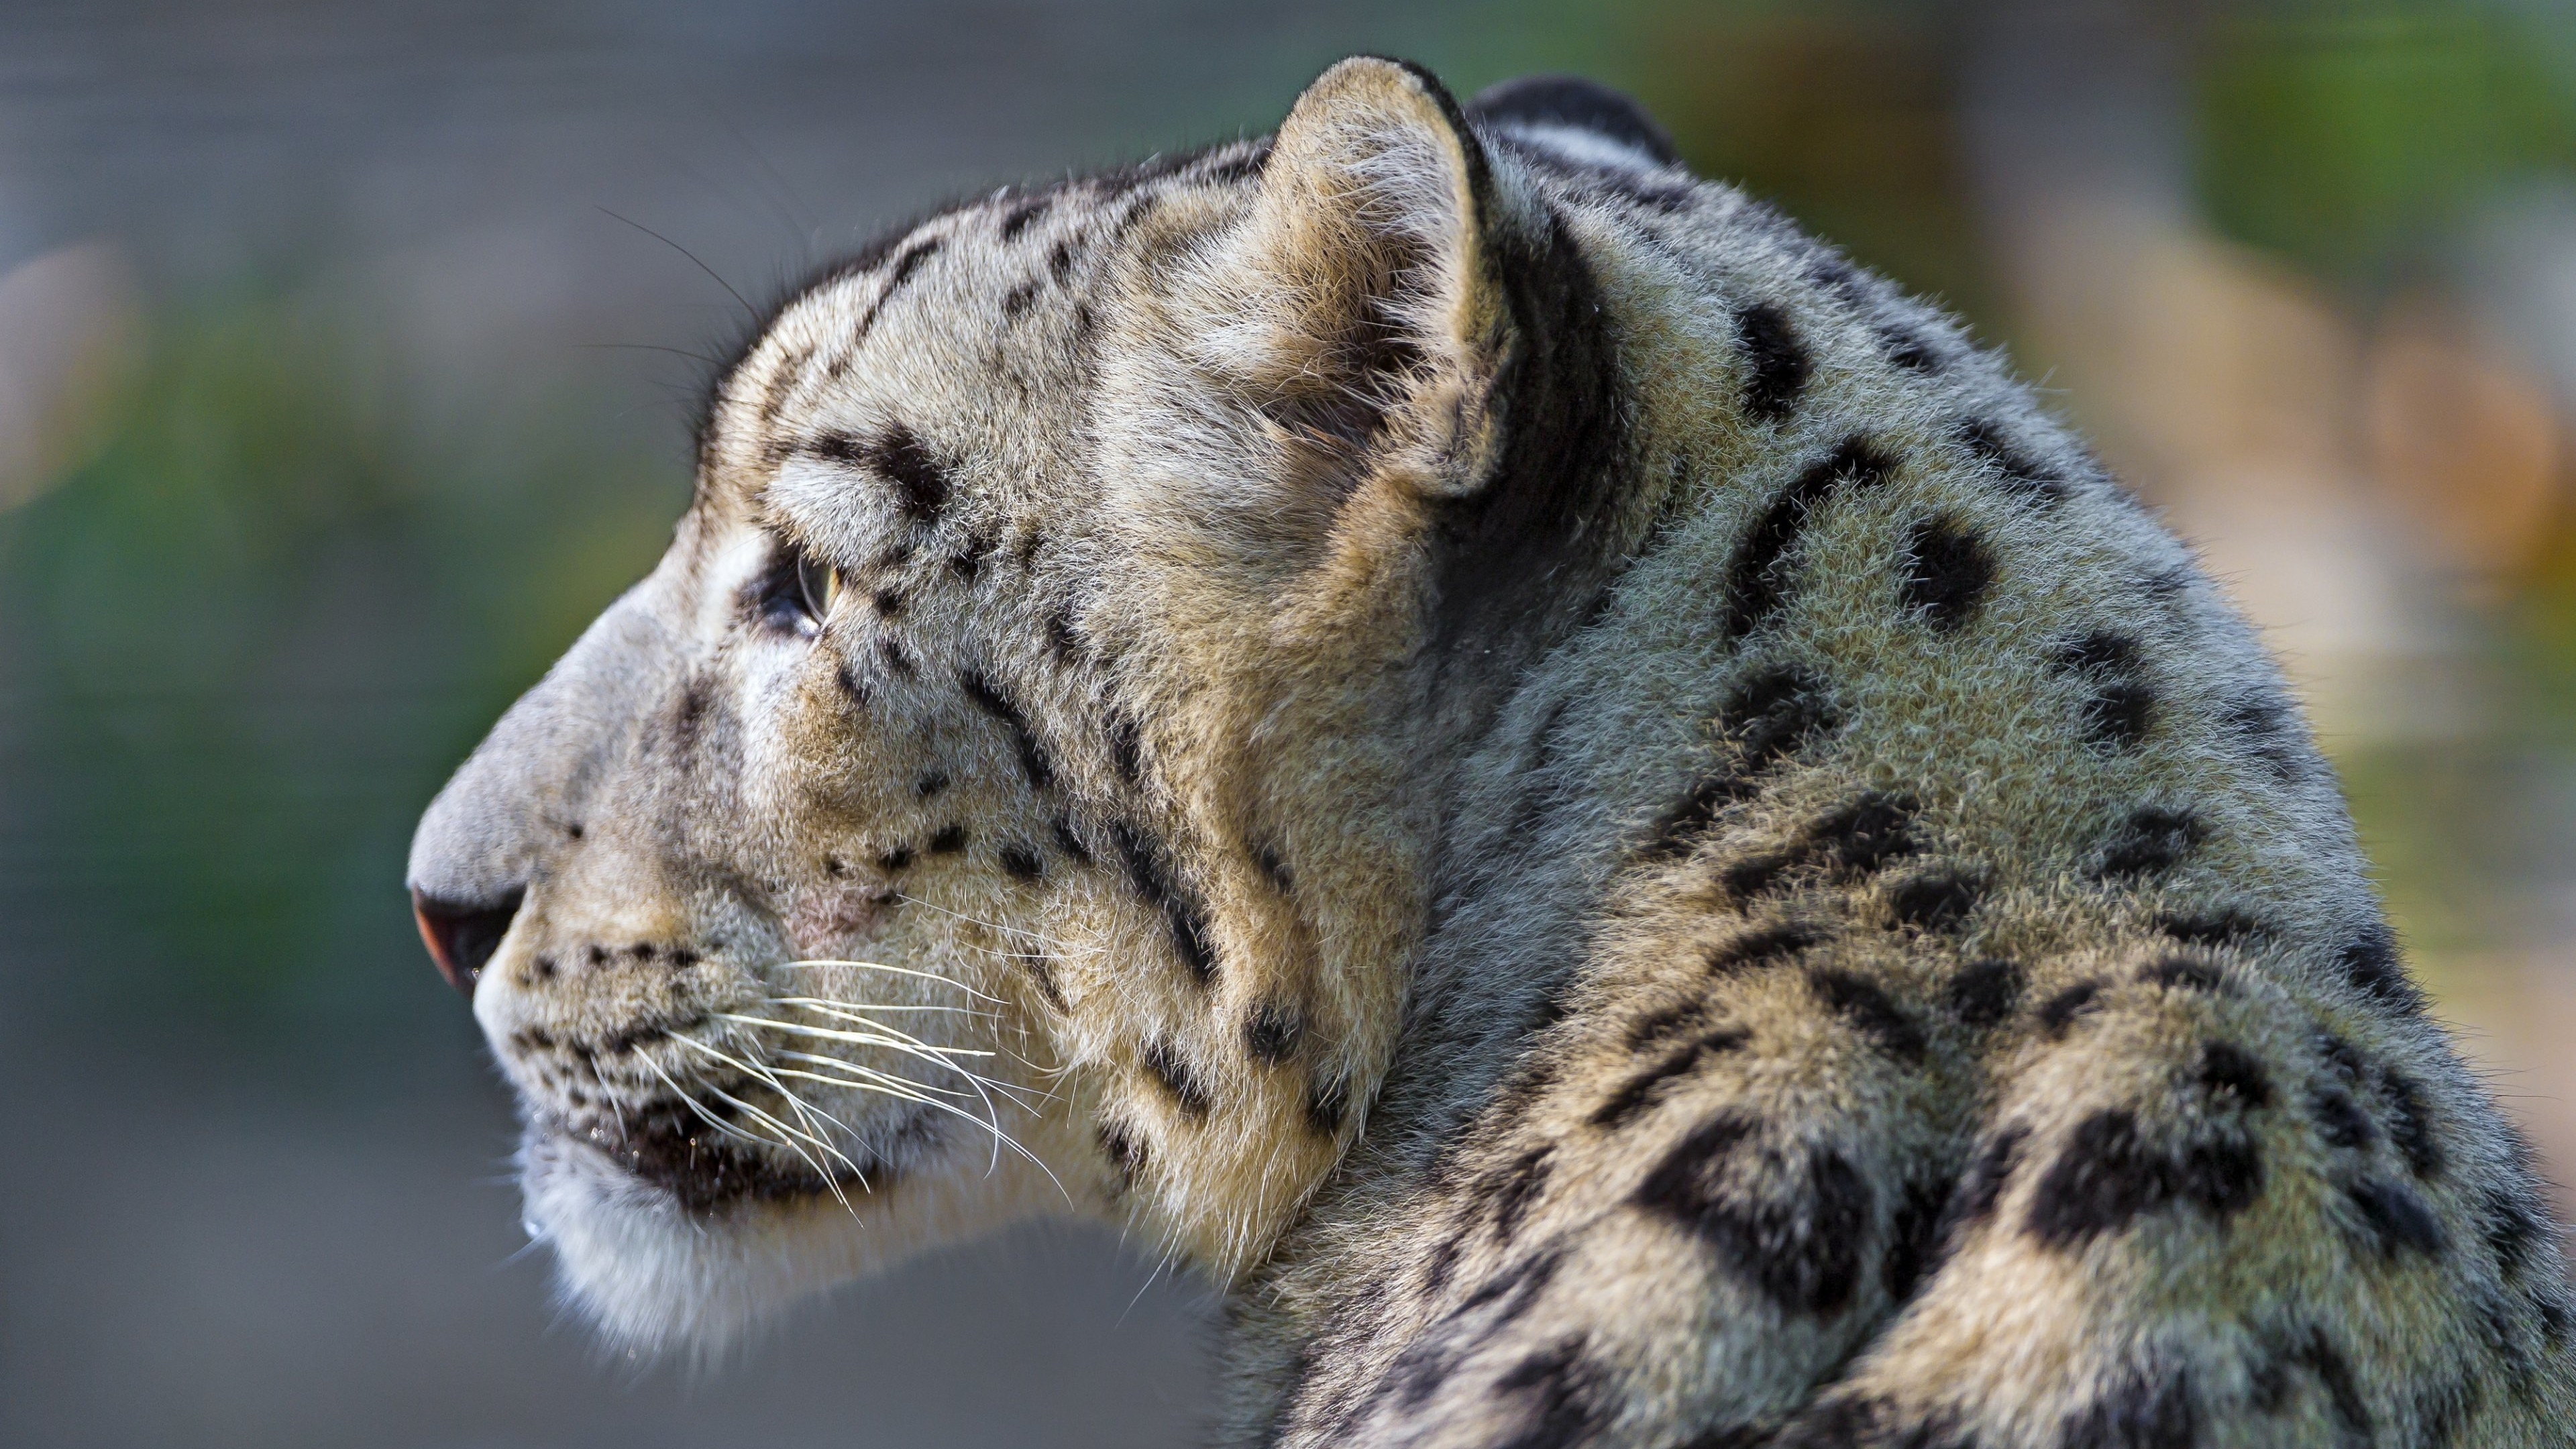 Snow Leopard Face Profile Wallpaper for Desktop 4K 3840x2160